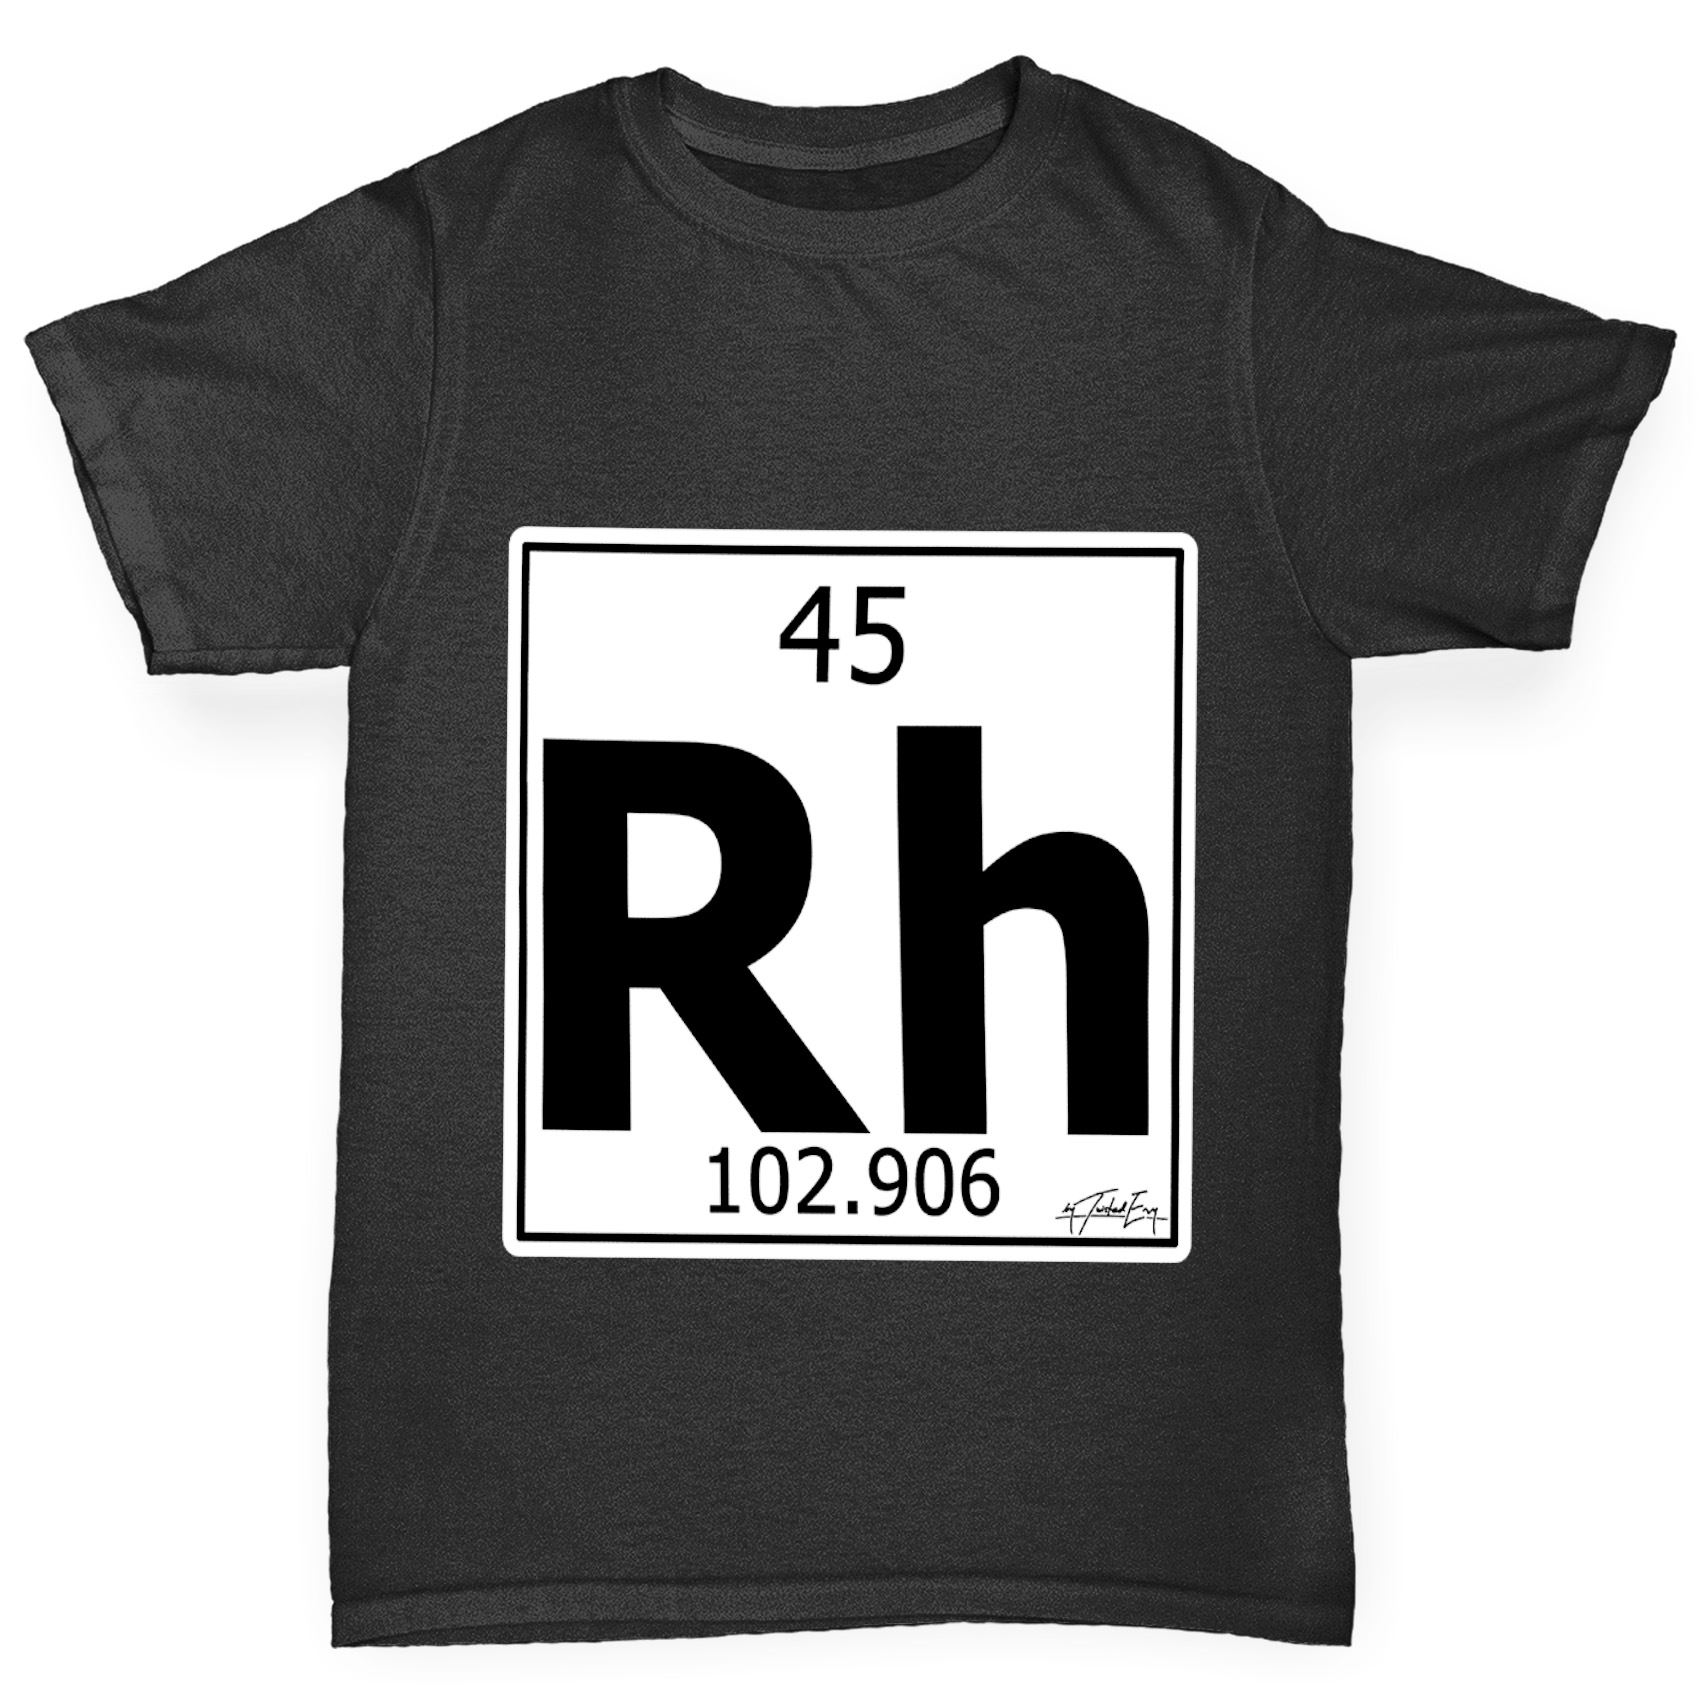 Twisted envy boys periodic table element rh rhodium t shirt ebay twisted envy boy 039 s periodic table element gamestrikefo Images